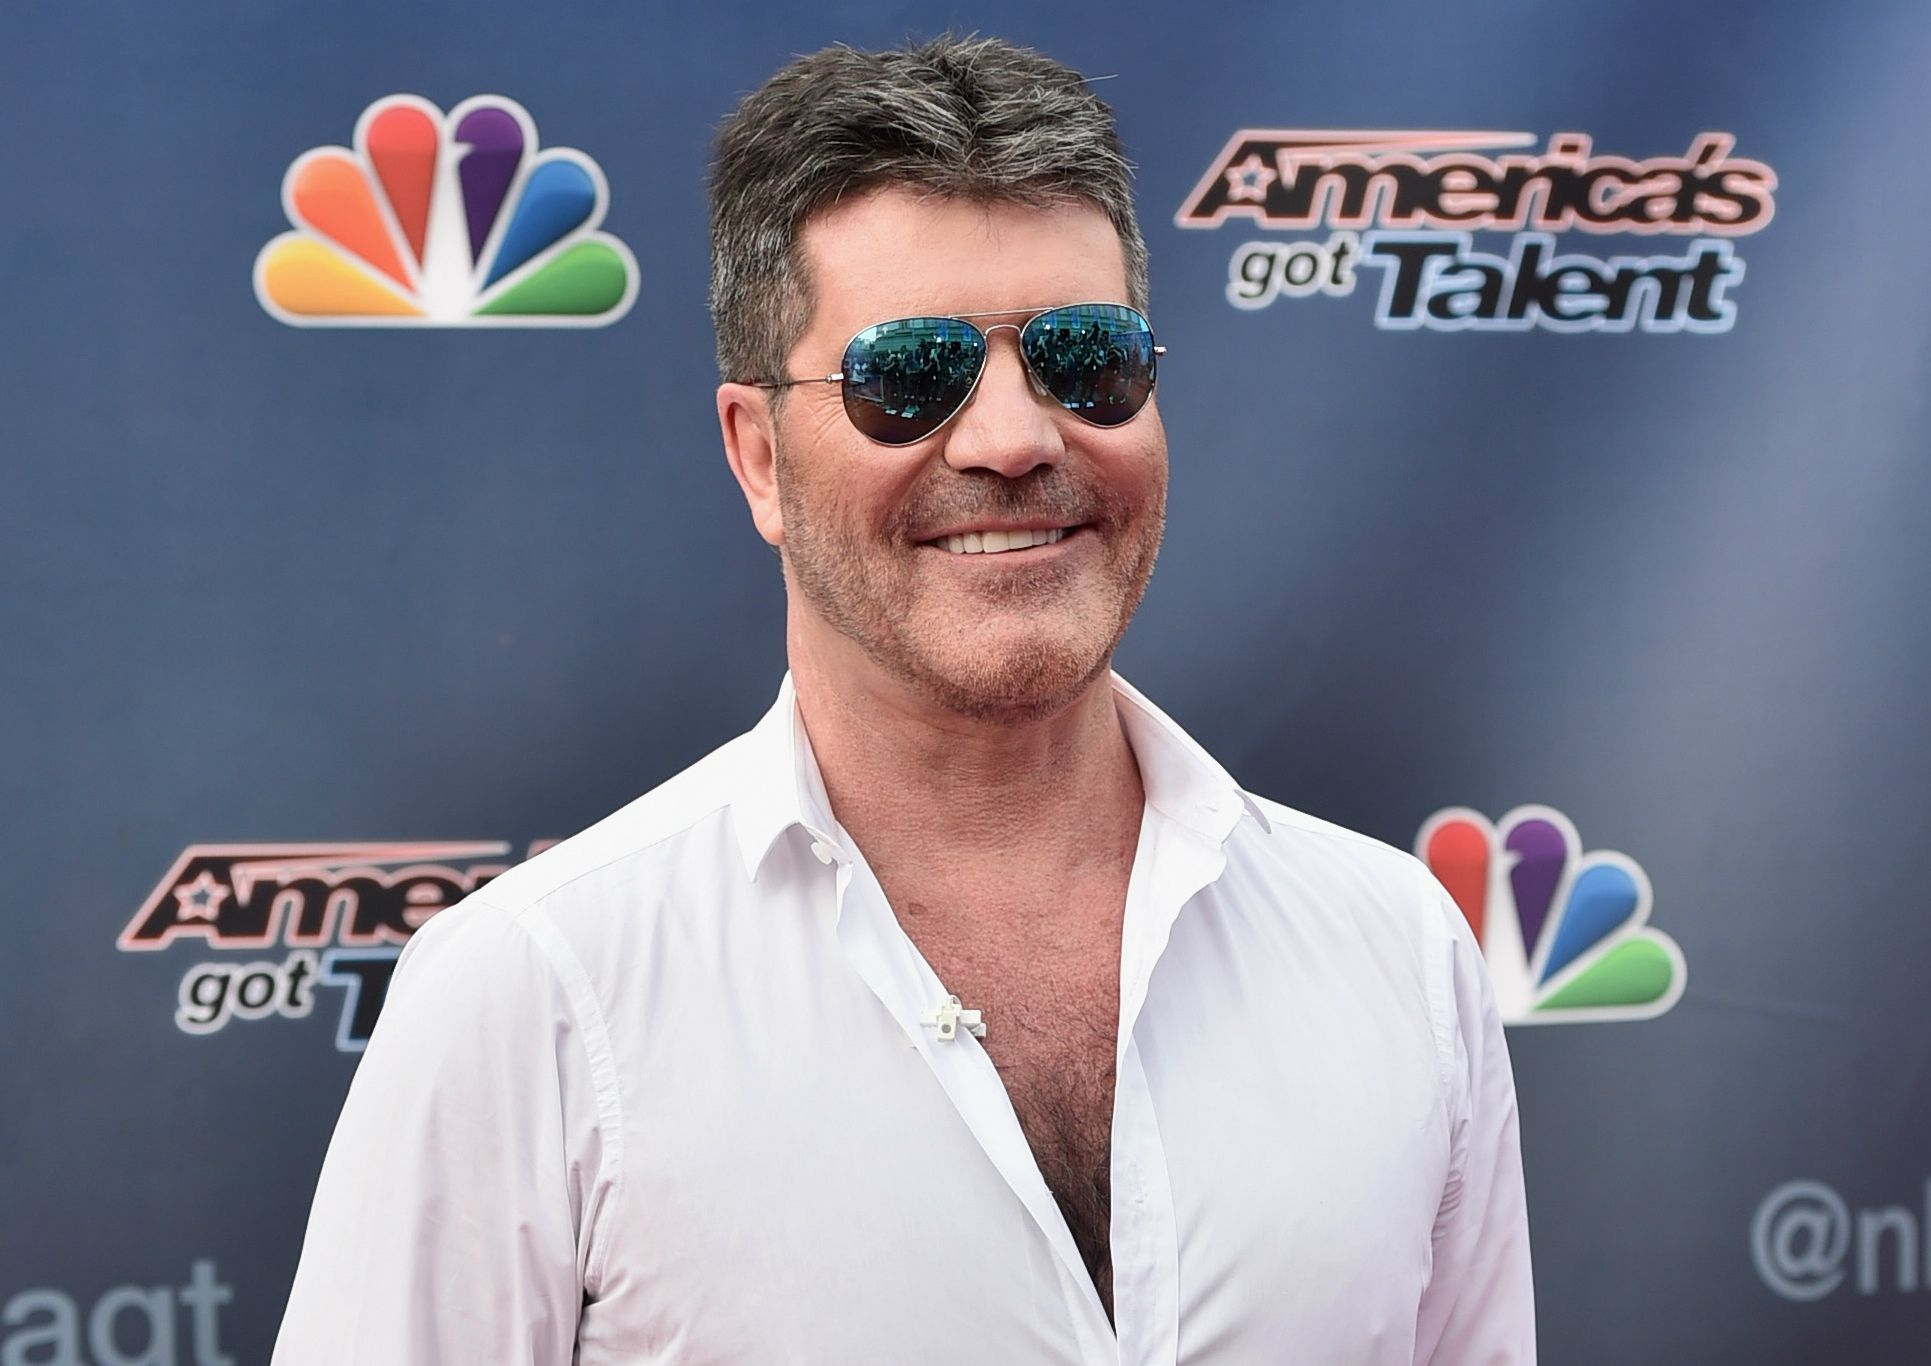 Simon Cowell at America's Got Talent launch